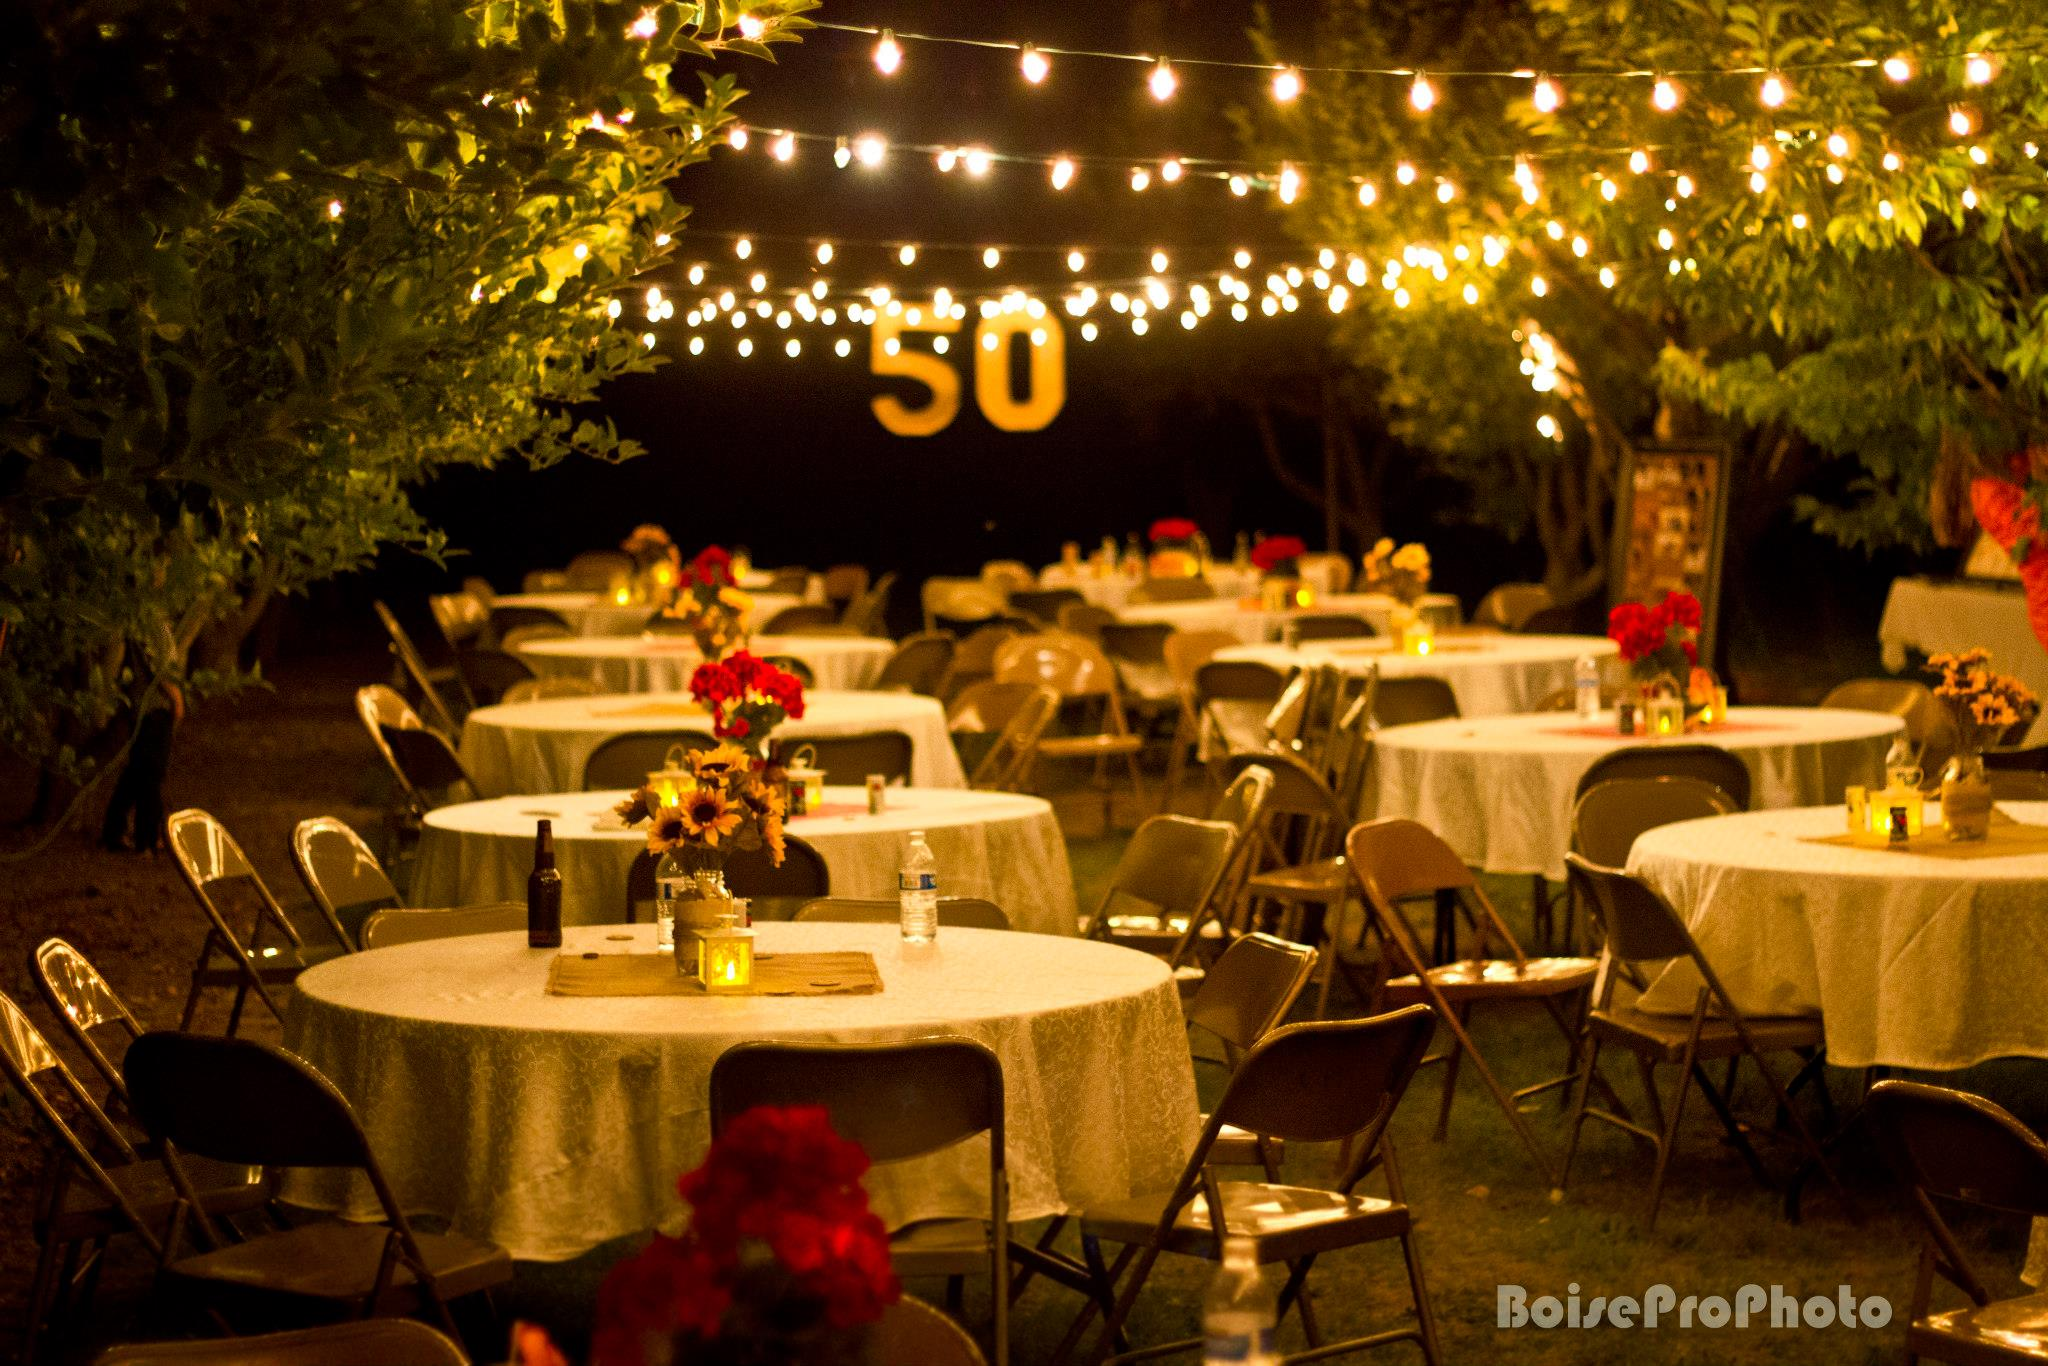 Diy 50th wedding anniversary party from salty bison for Anniversary decoration ideas home